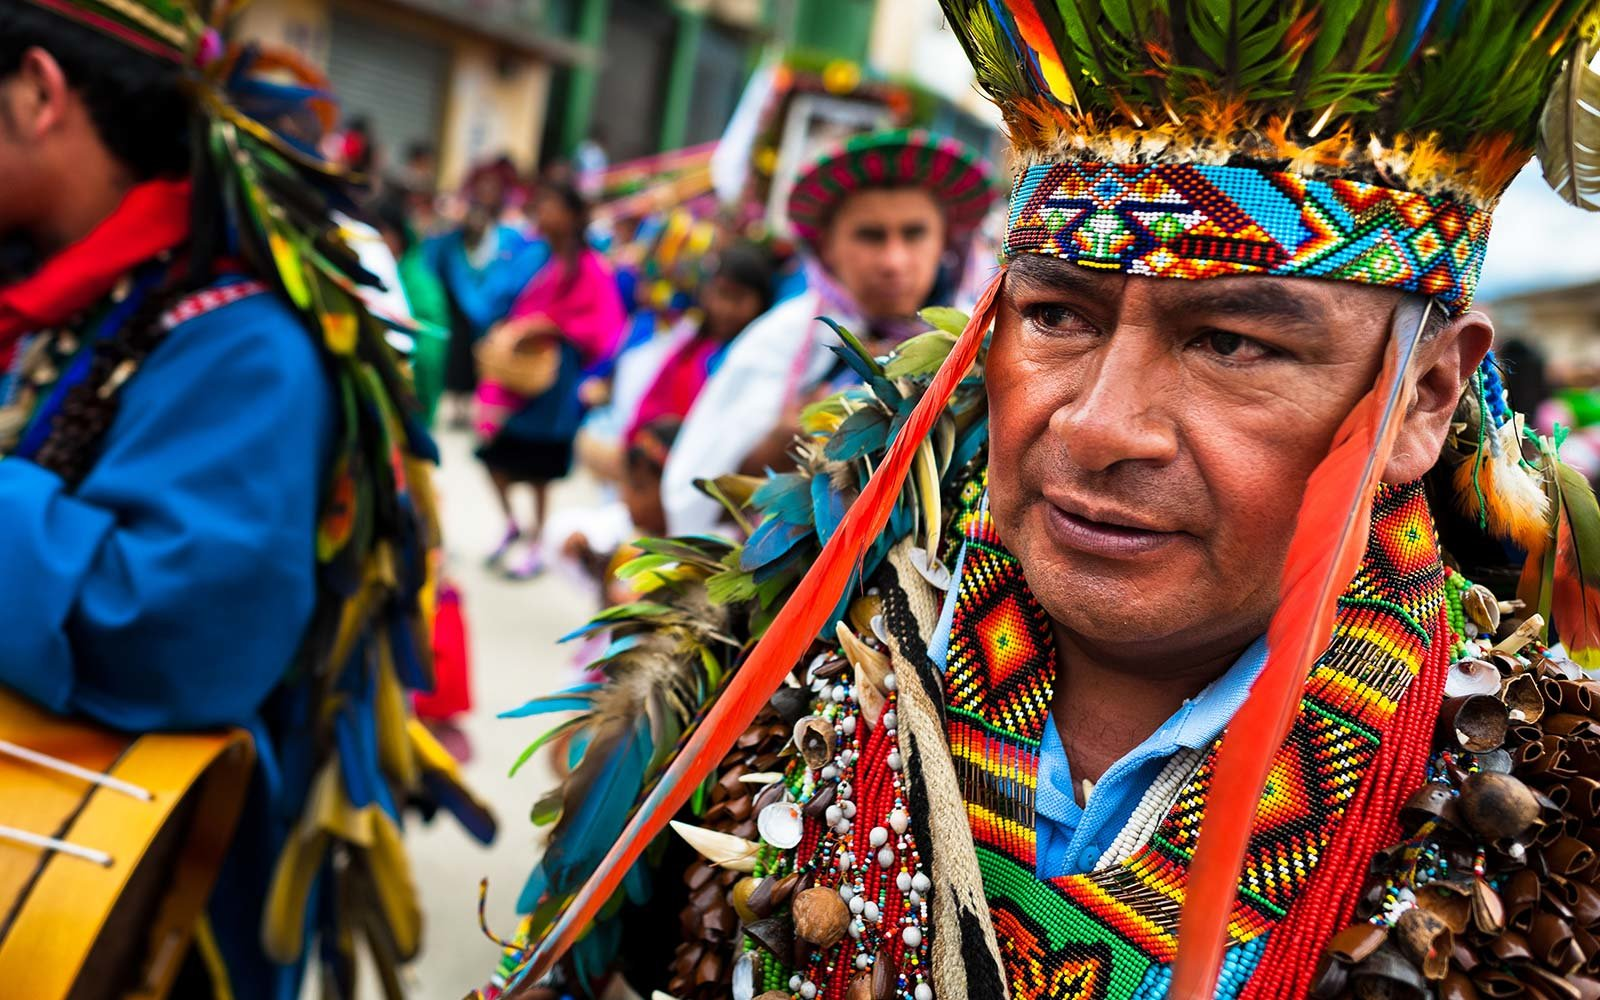 Putumayo Kamentsa shaman, wearing a colorful costume, takes part in the Carnival of Forgiveness in Sibundoy Colombia Style Travel Fashion Guide